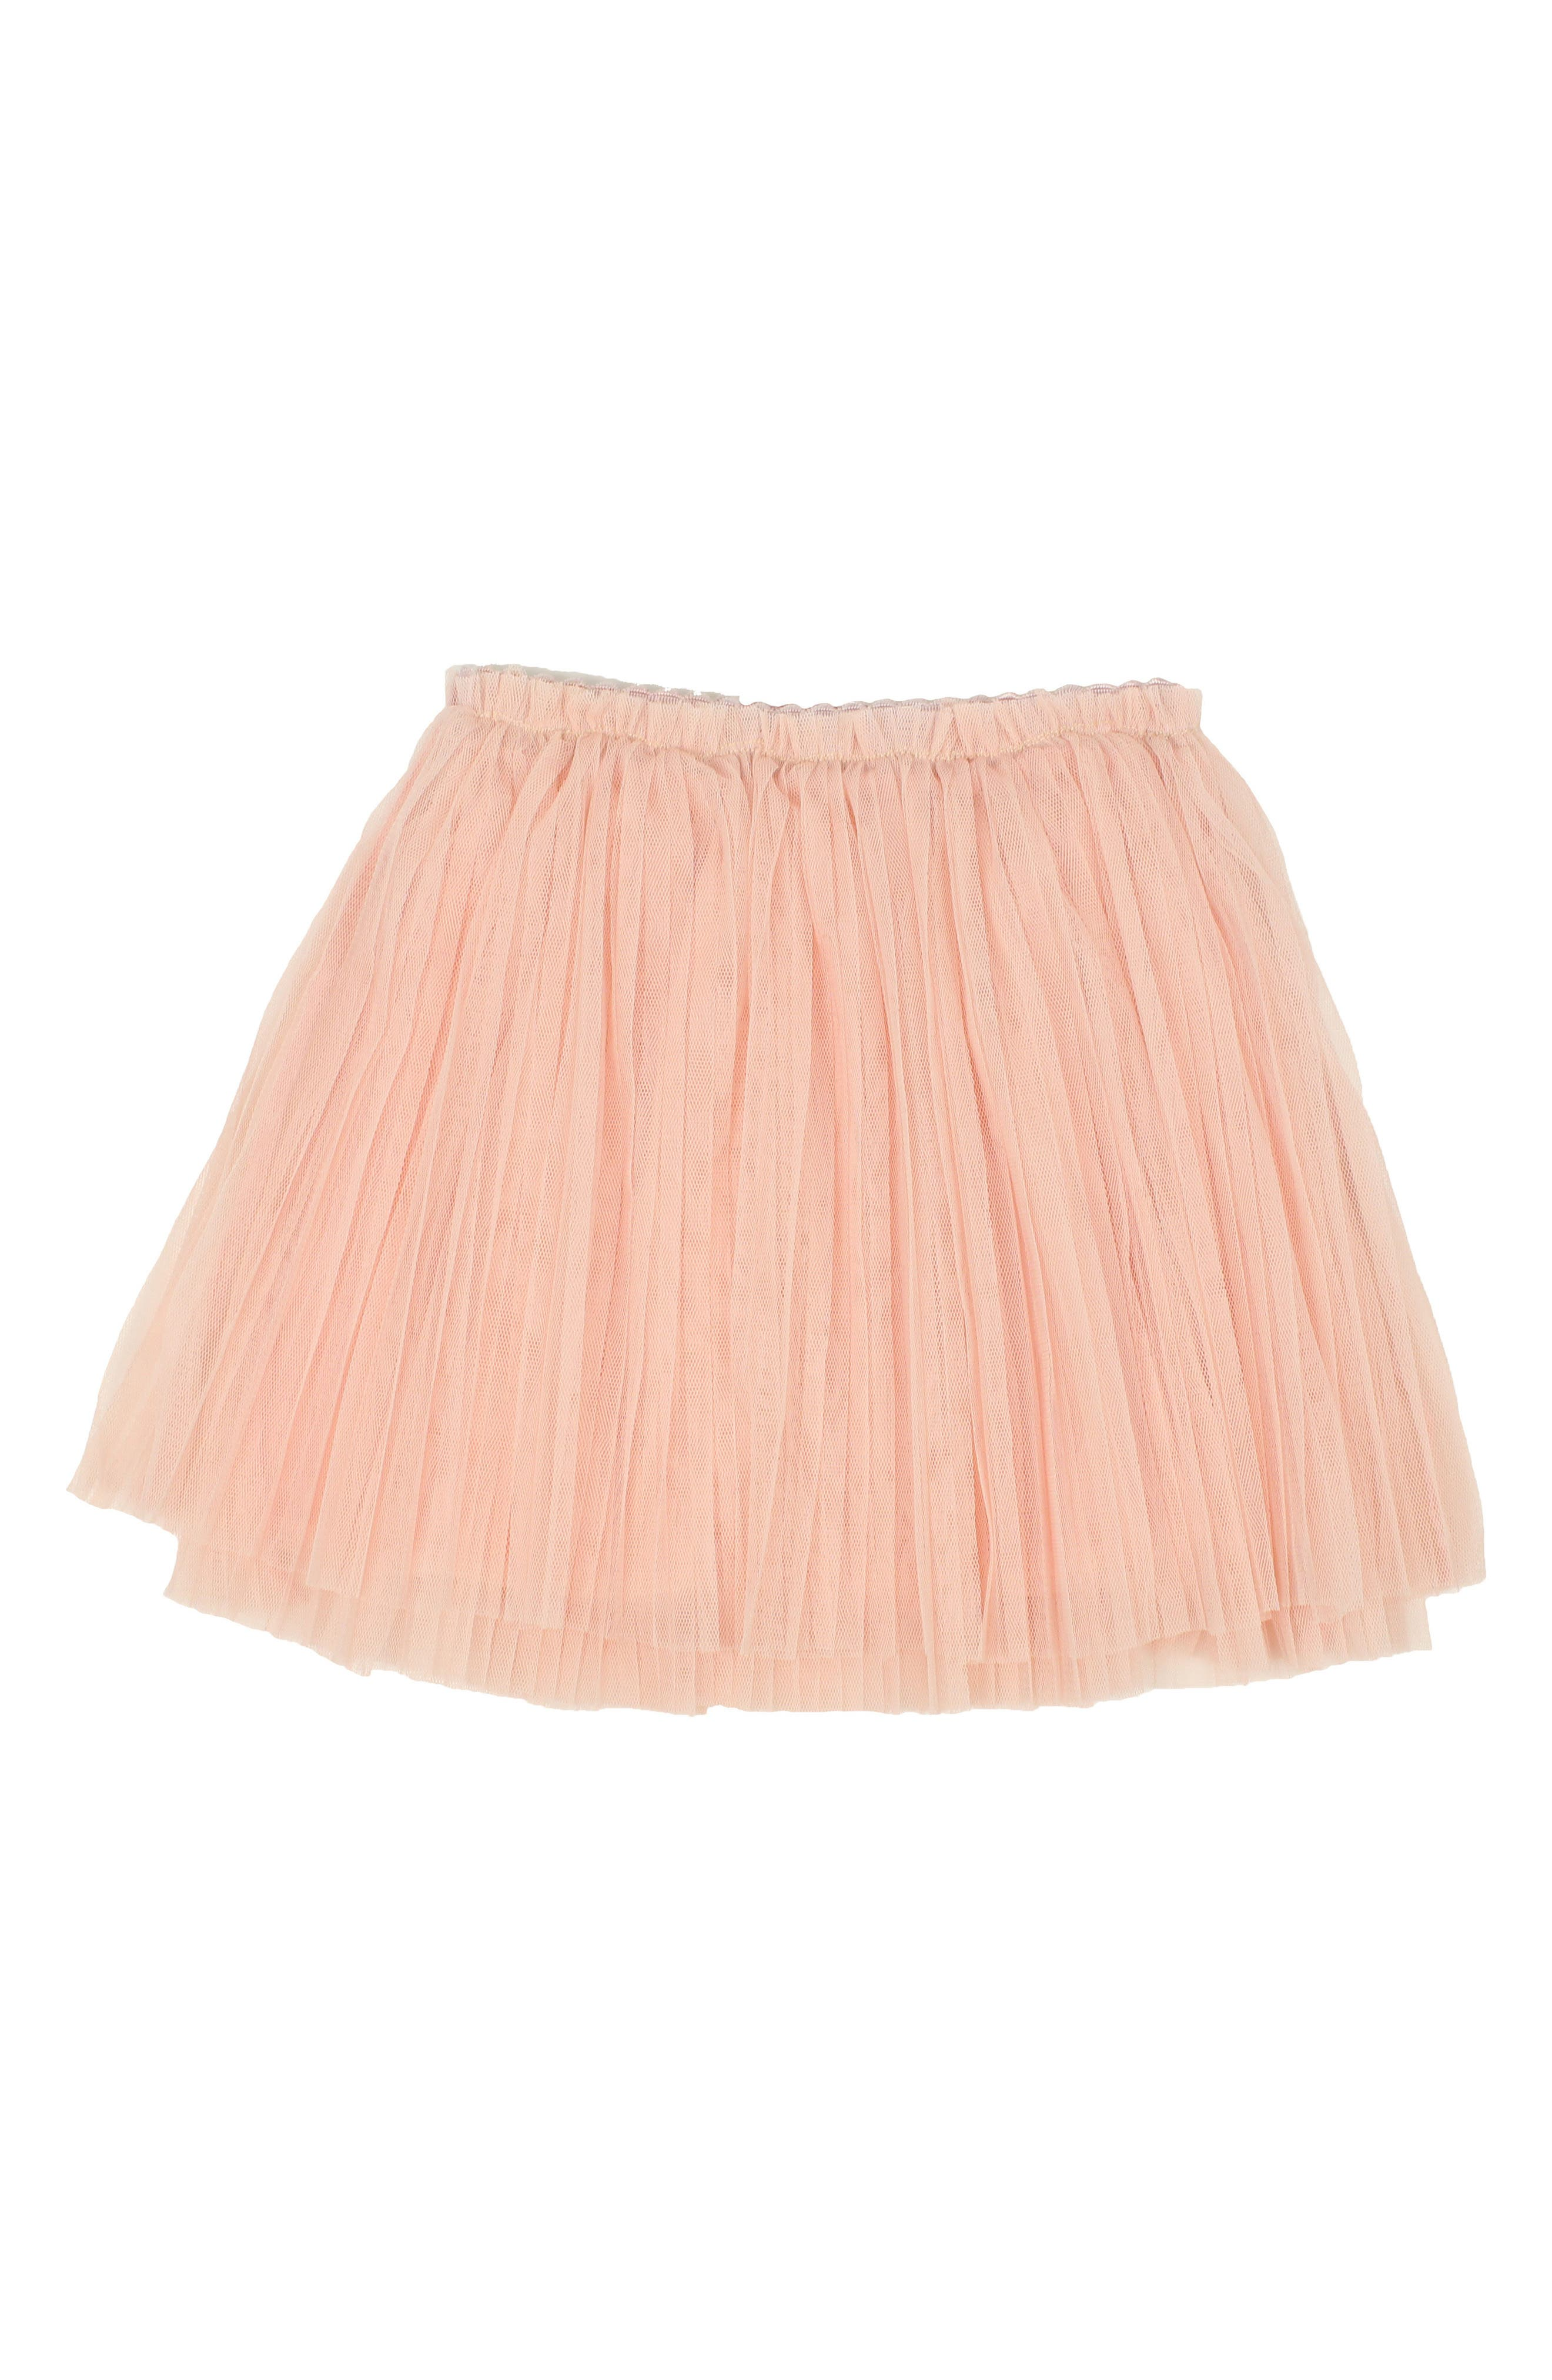 Pleated Tulle Skirt,                             Main thumbnail 1, color,                             PEACH